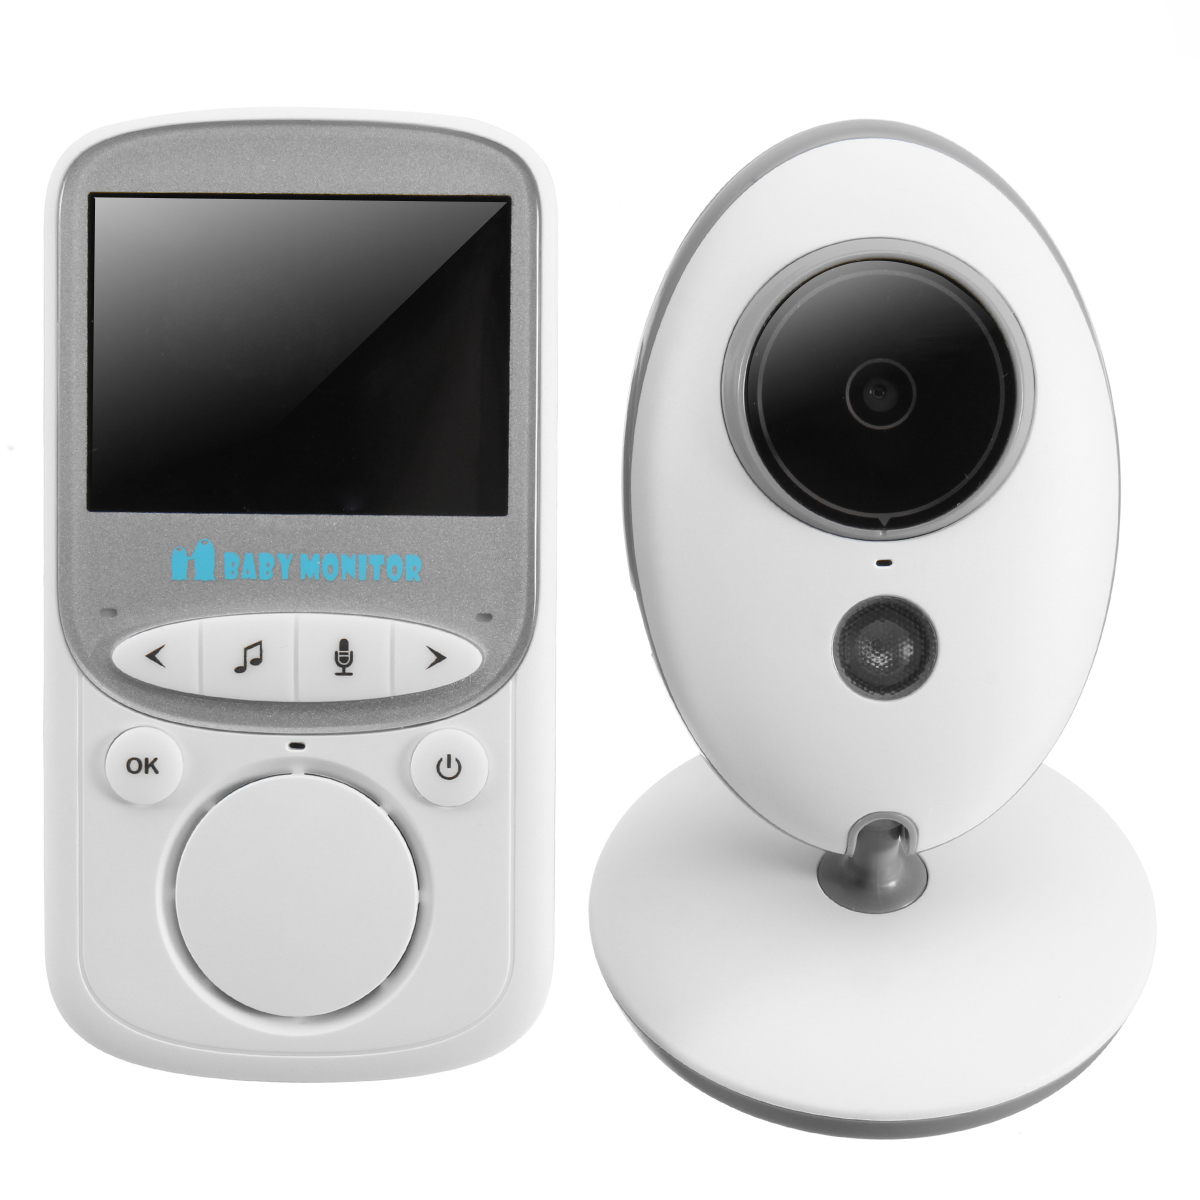 2.4GHz Wireless Digital LCD Color Baby Monitor IP Camera Audio Video Night Vision